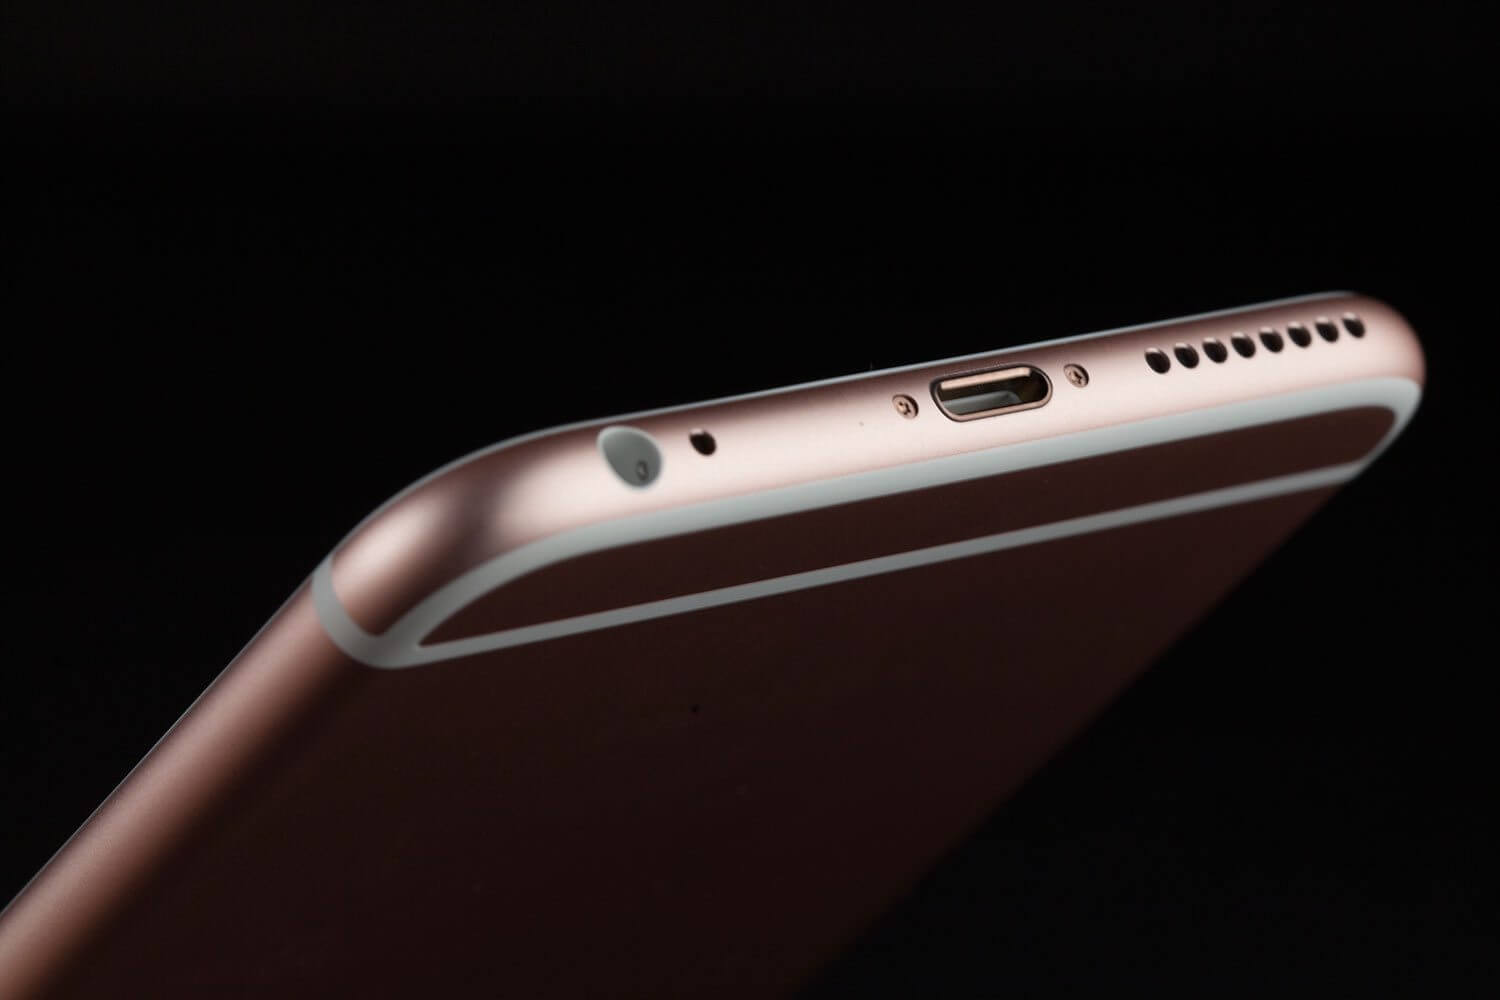 iPhone 6S e 6S Plus: o que os reviews dizem sobre os aparelhos 6